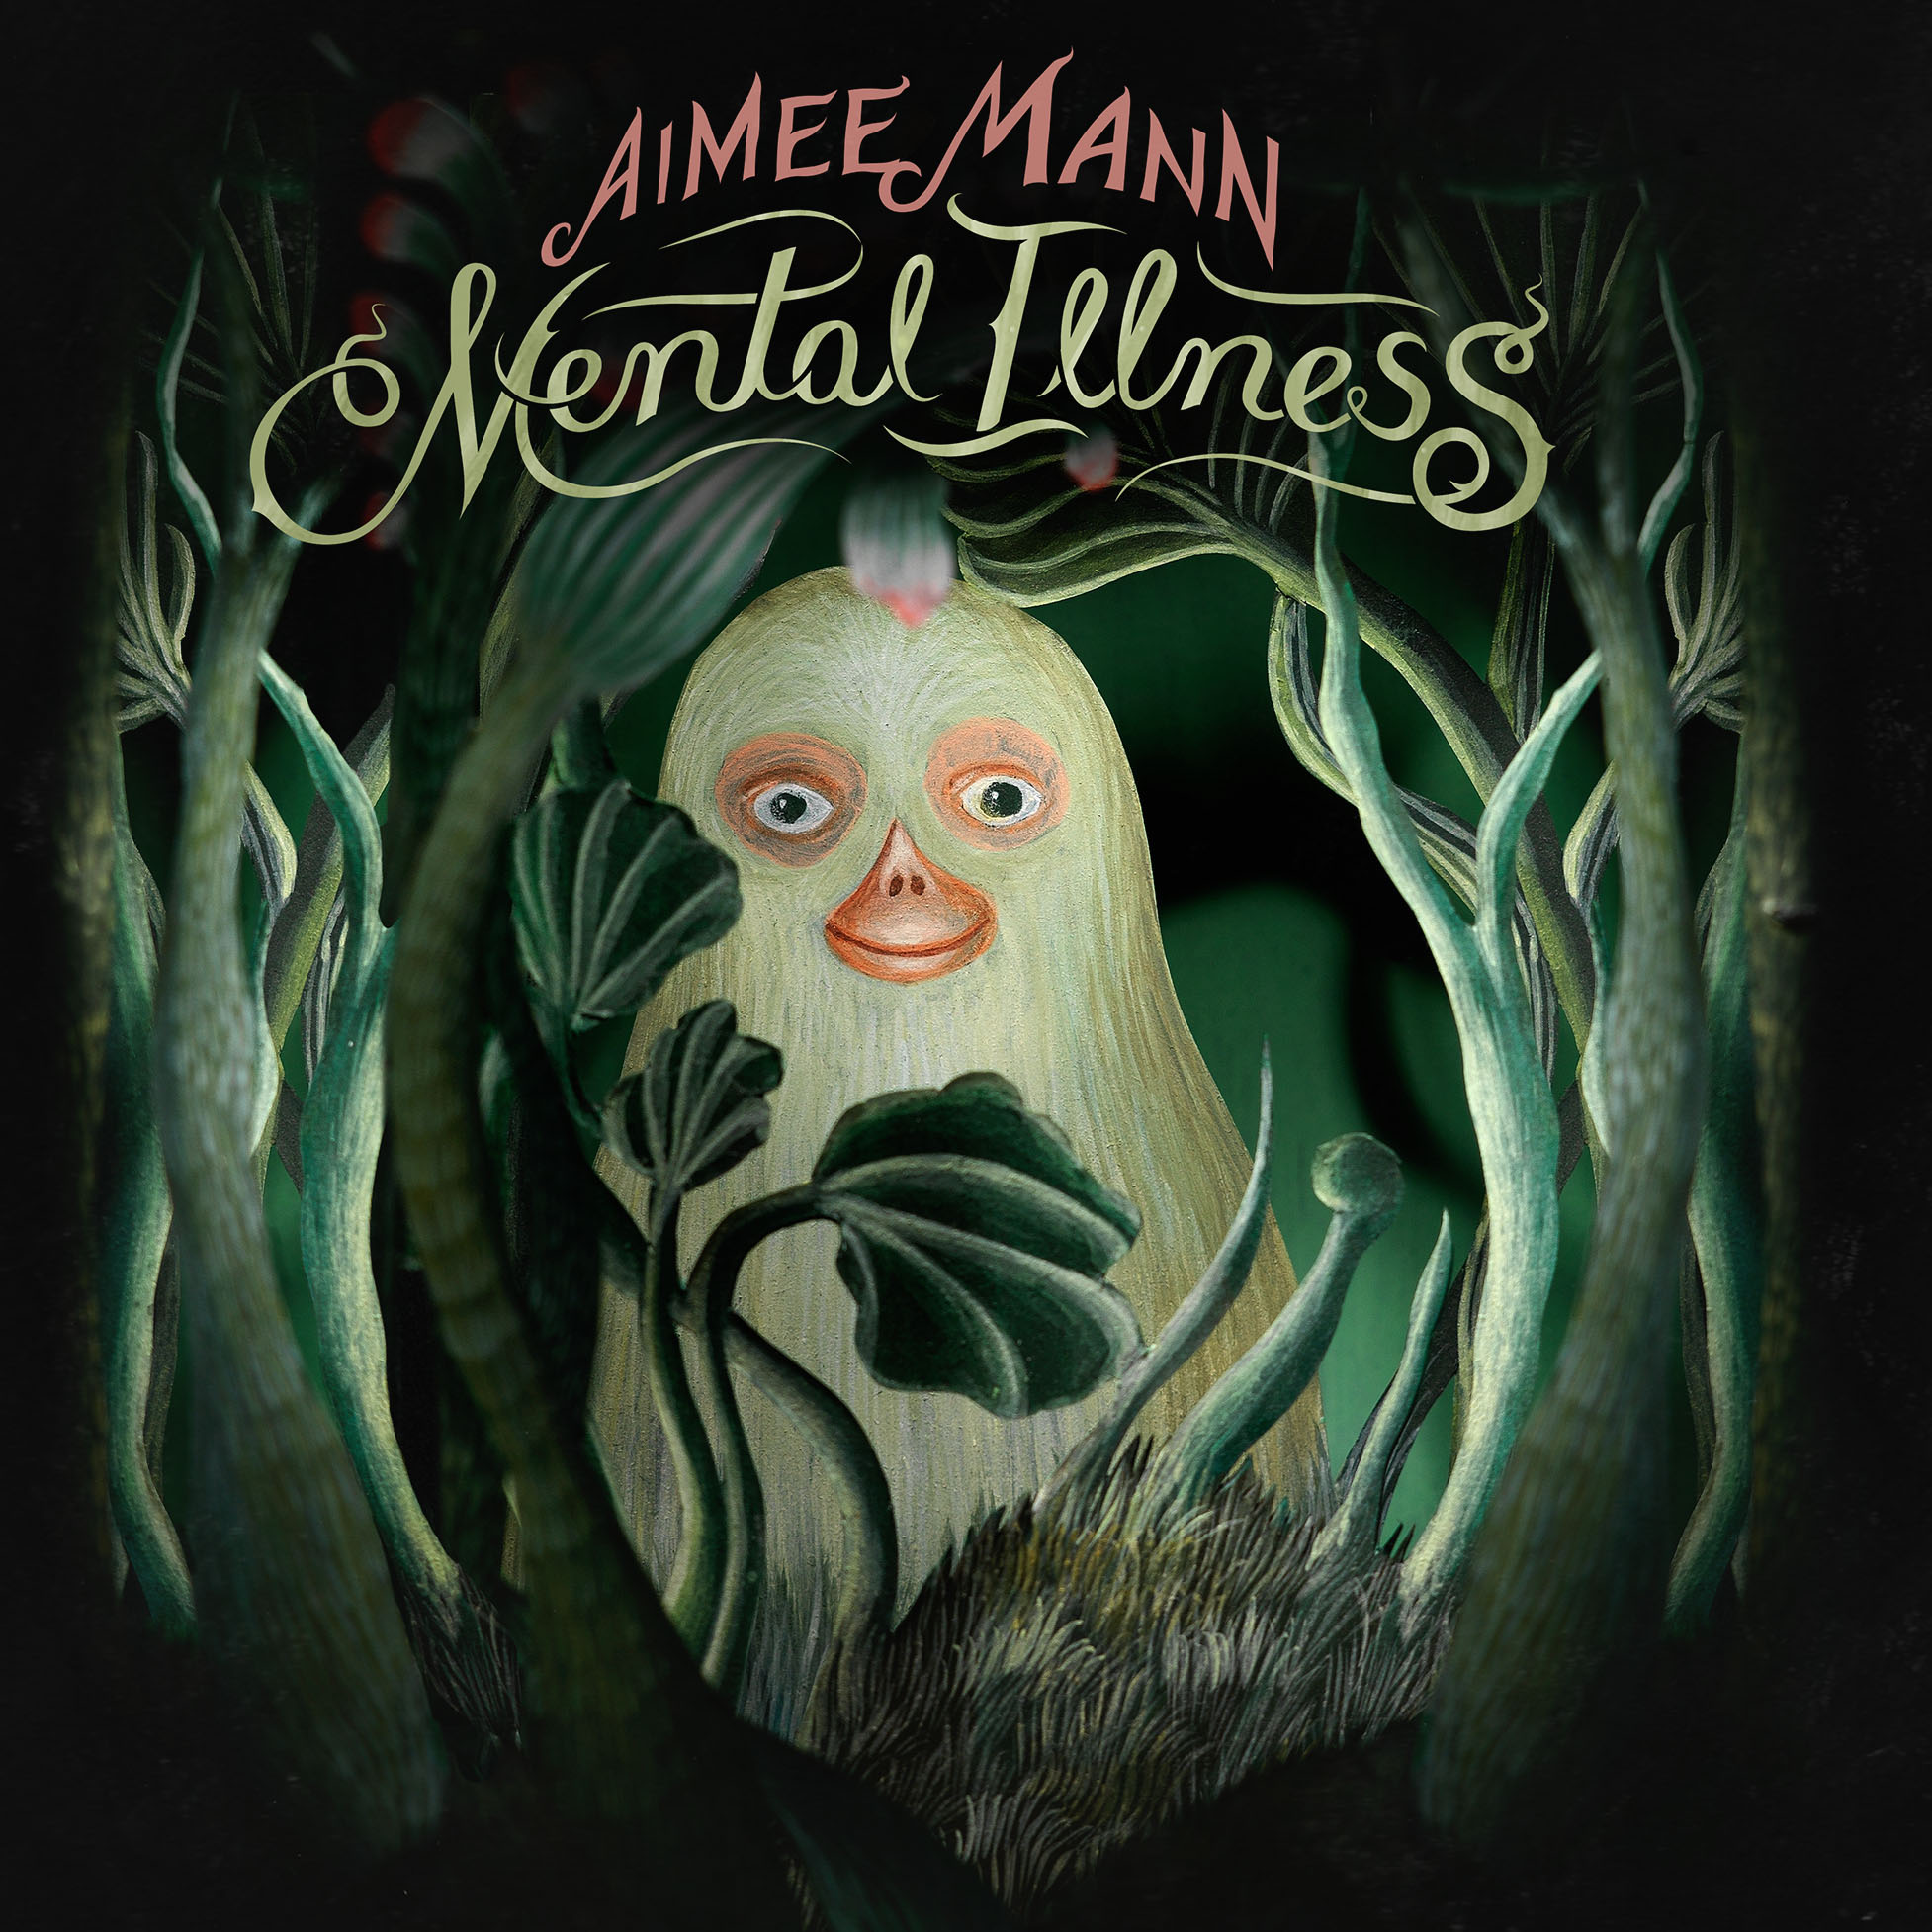 aimee mann Aimee Mann shares new album, Mental Illness: Stream